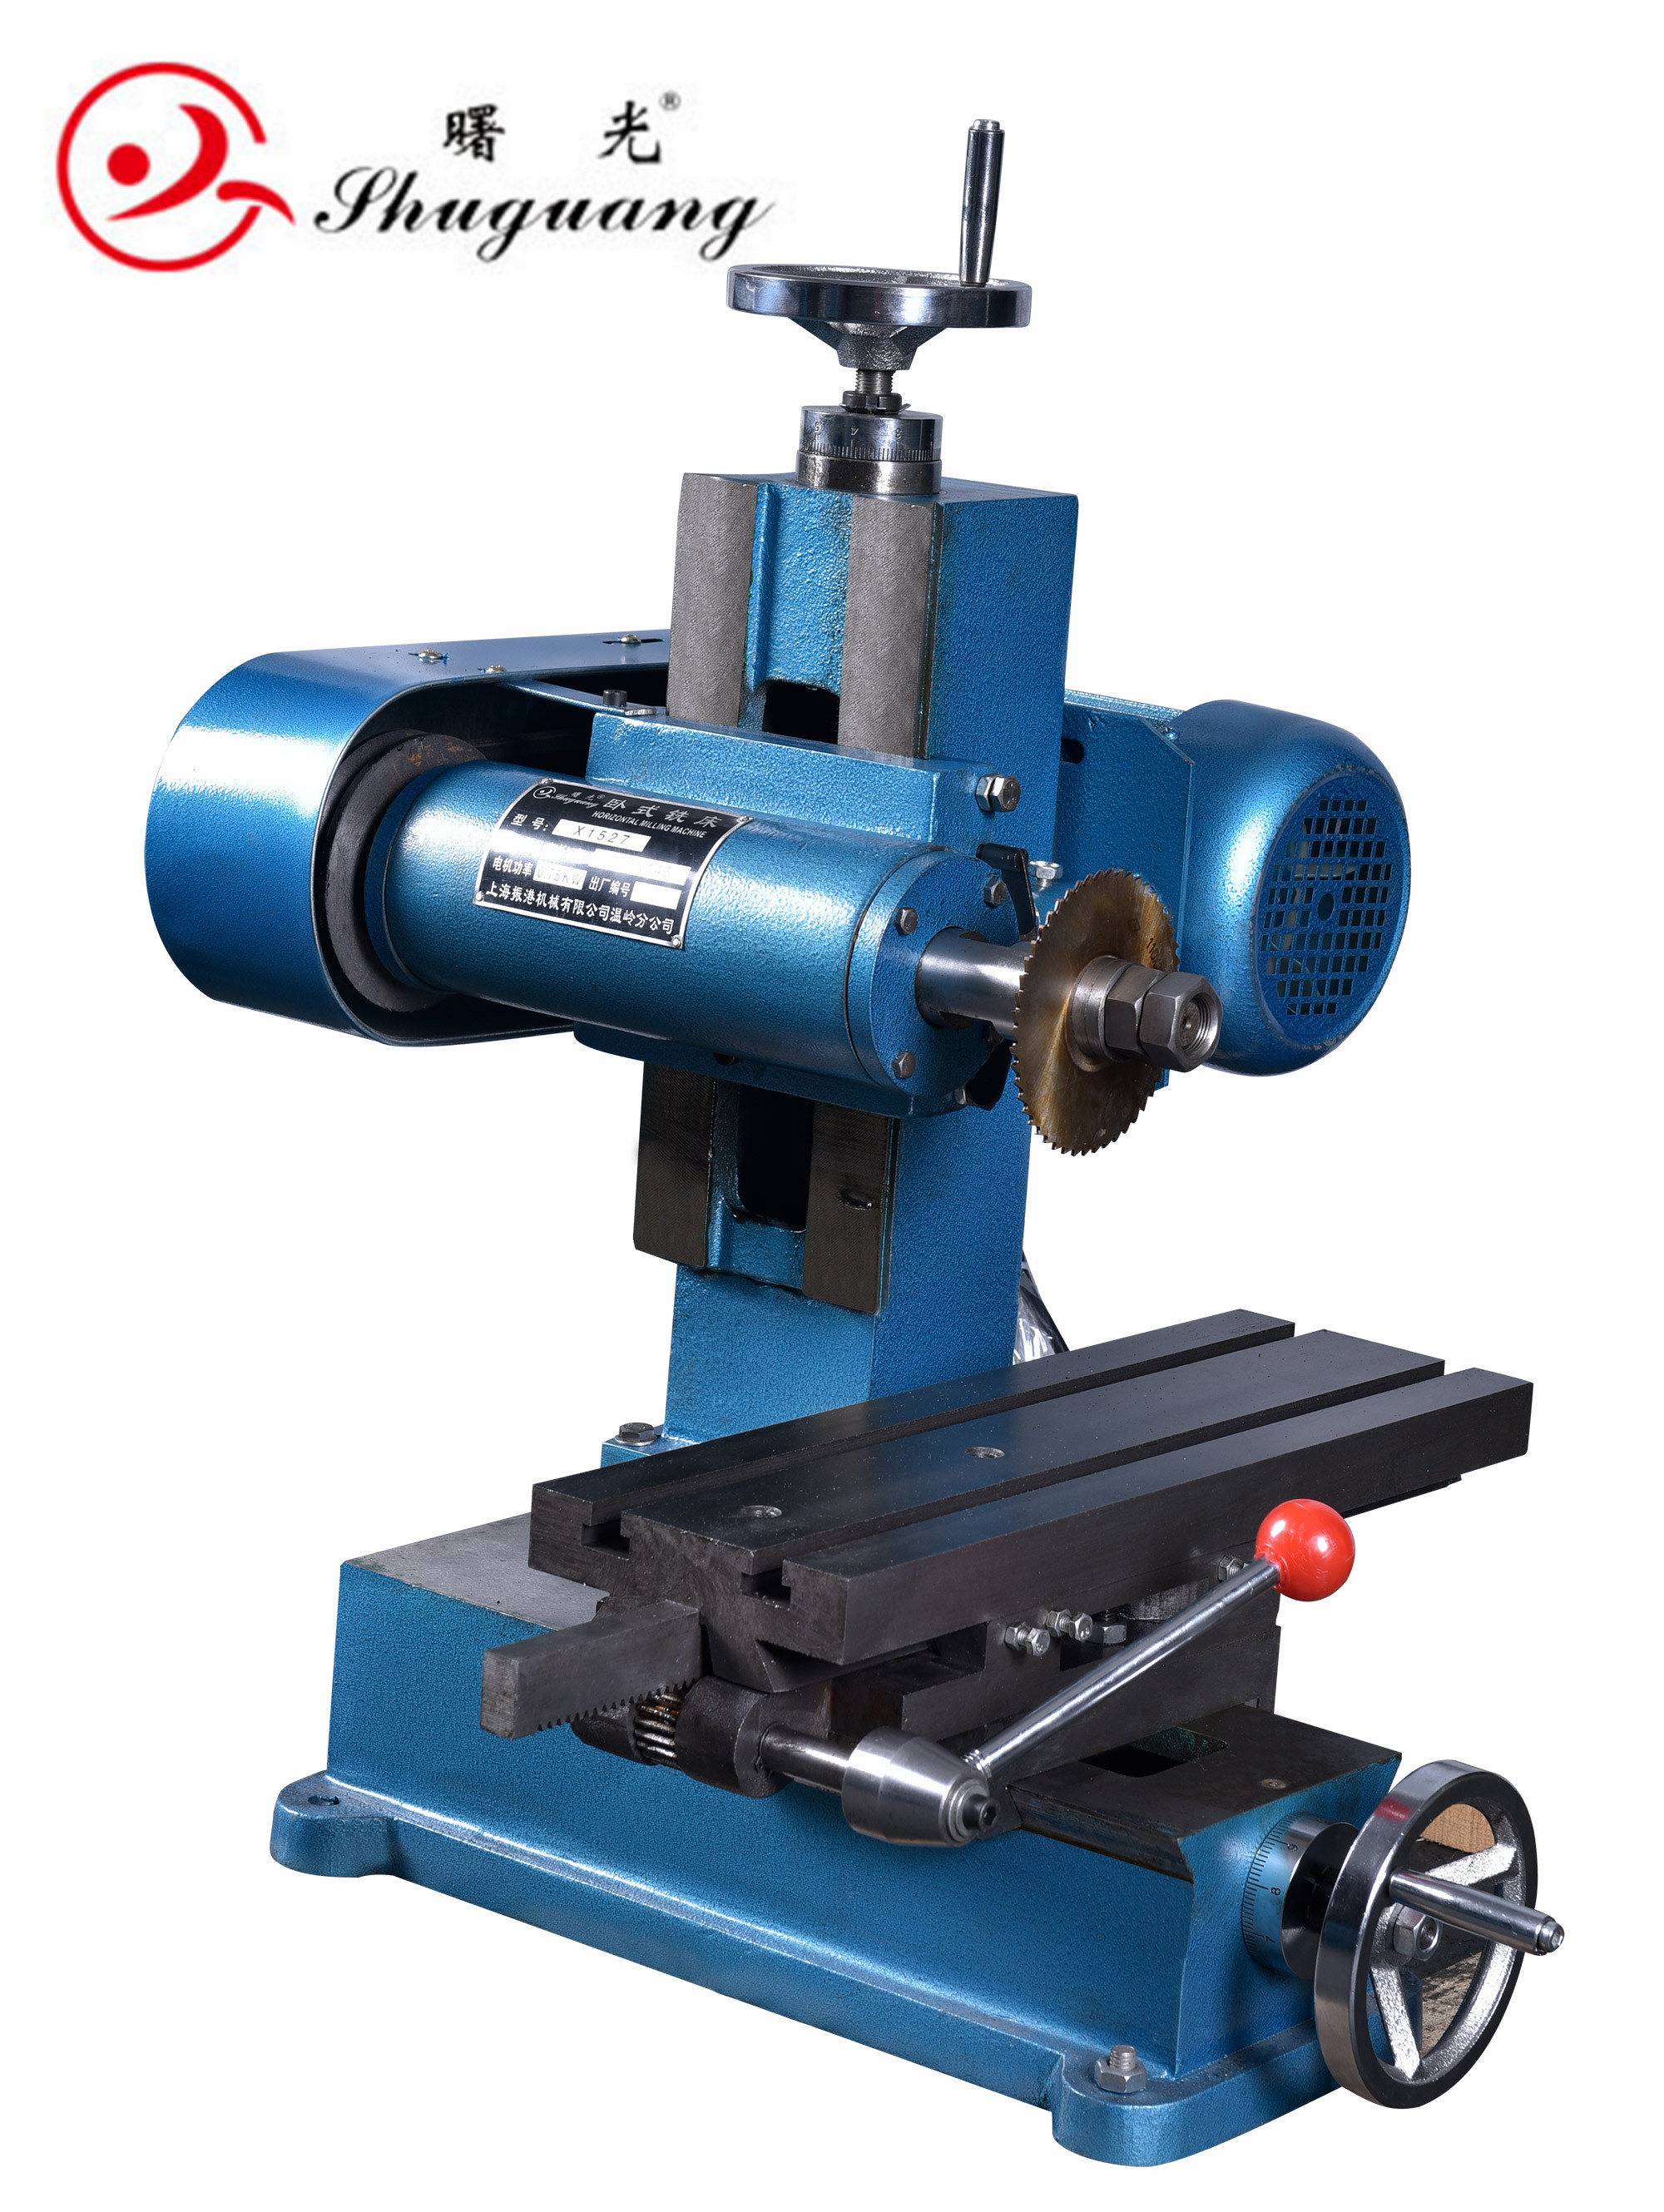 National Dawn x1514 simple horizontal milling machine